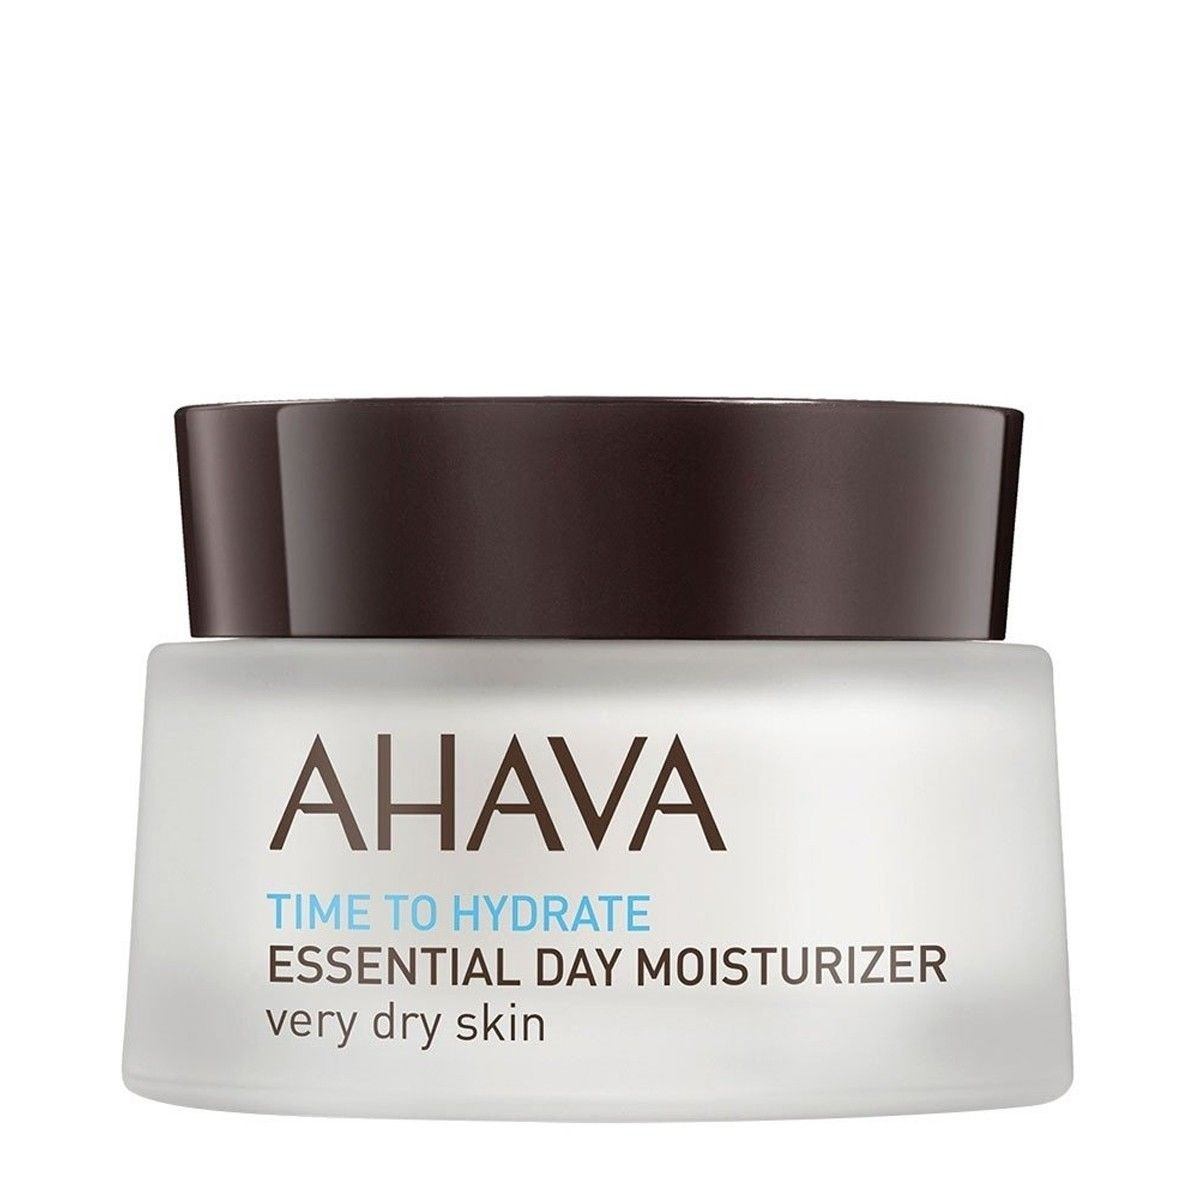 Time To Hydrate Essential Day Moisturizer - 0